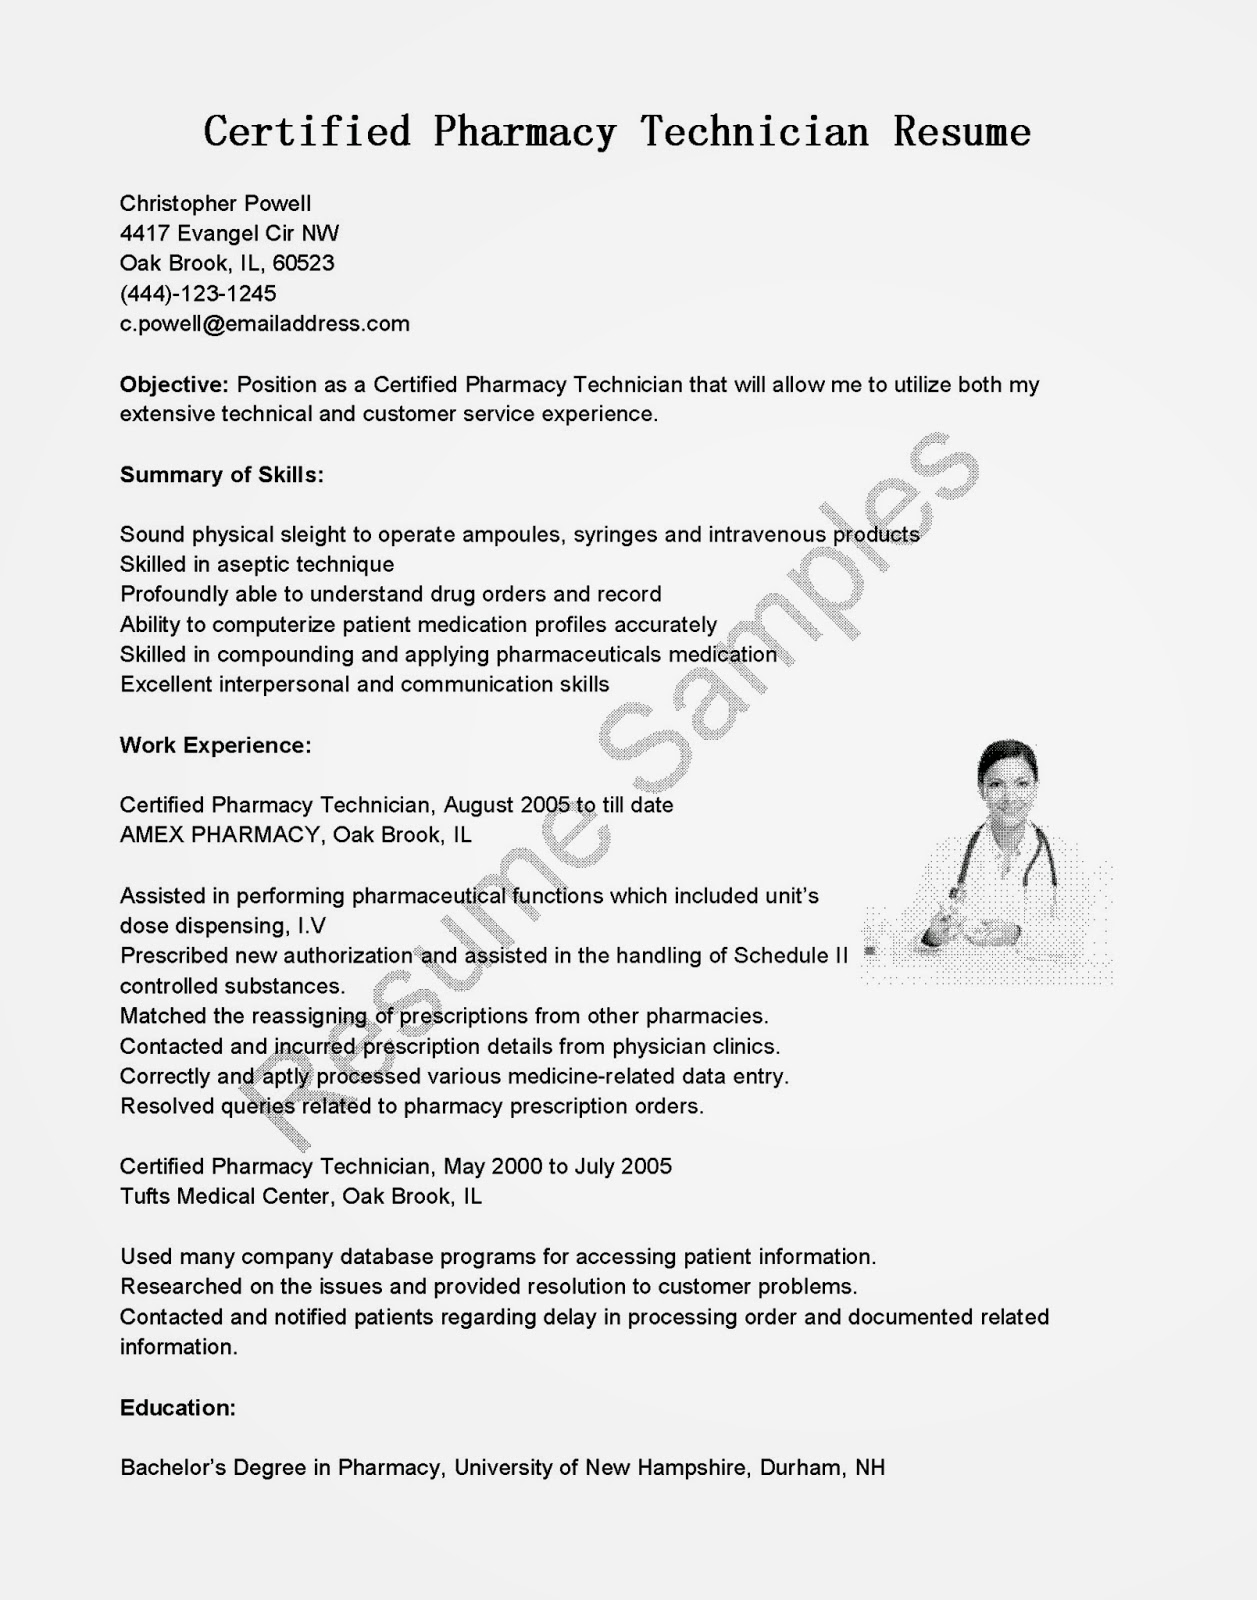 Resume For Pharmacy Technician With No Experience Resume Samples Certified Pharmacy Technician Resume Sample